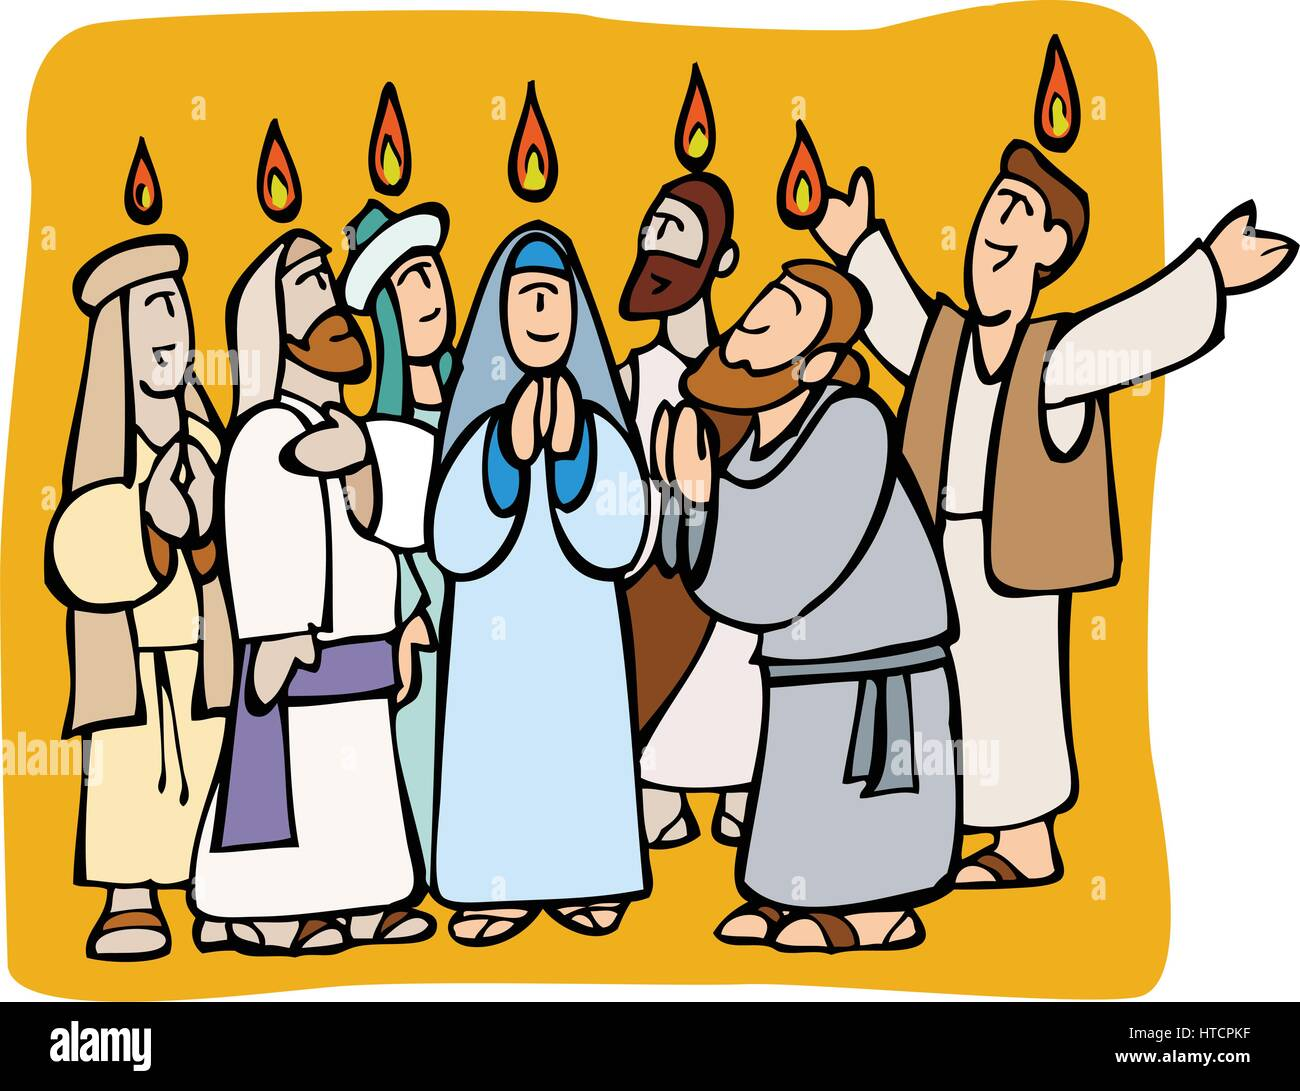 Pentecost. Apostles and Mary praying in tongues and fire ...